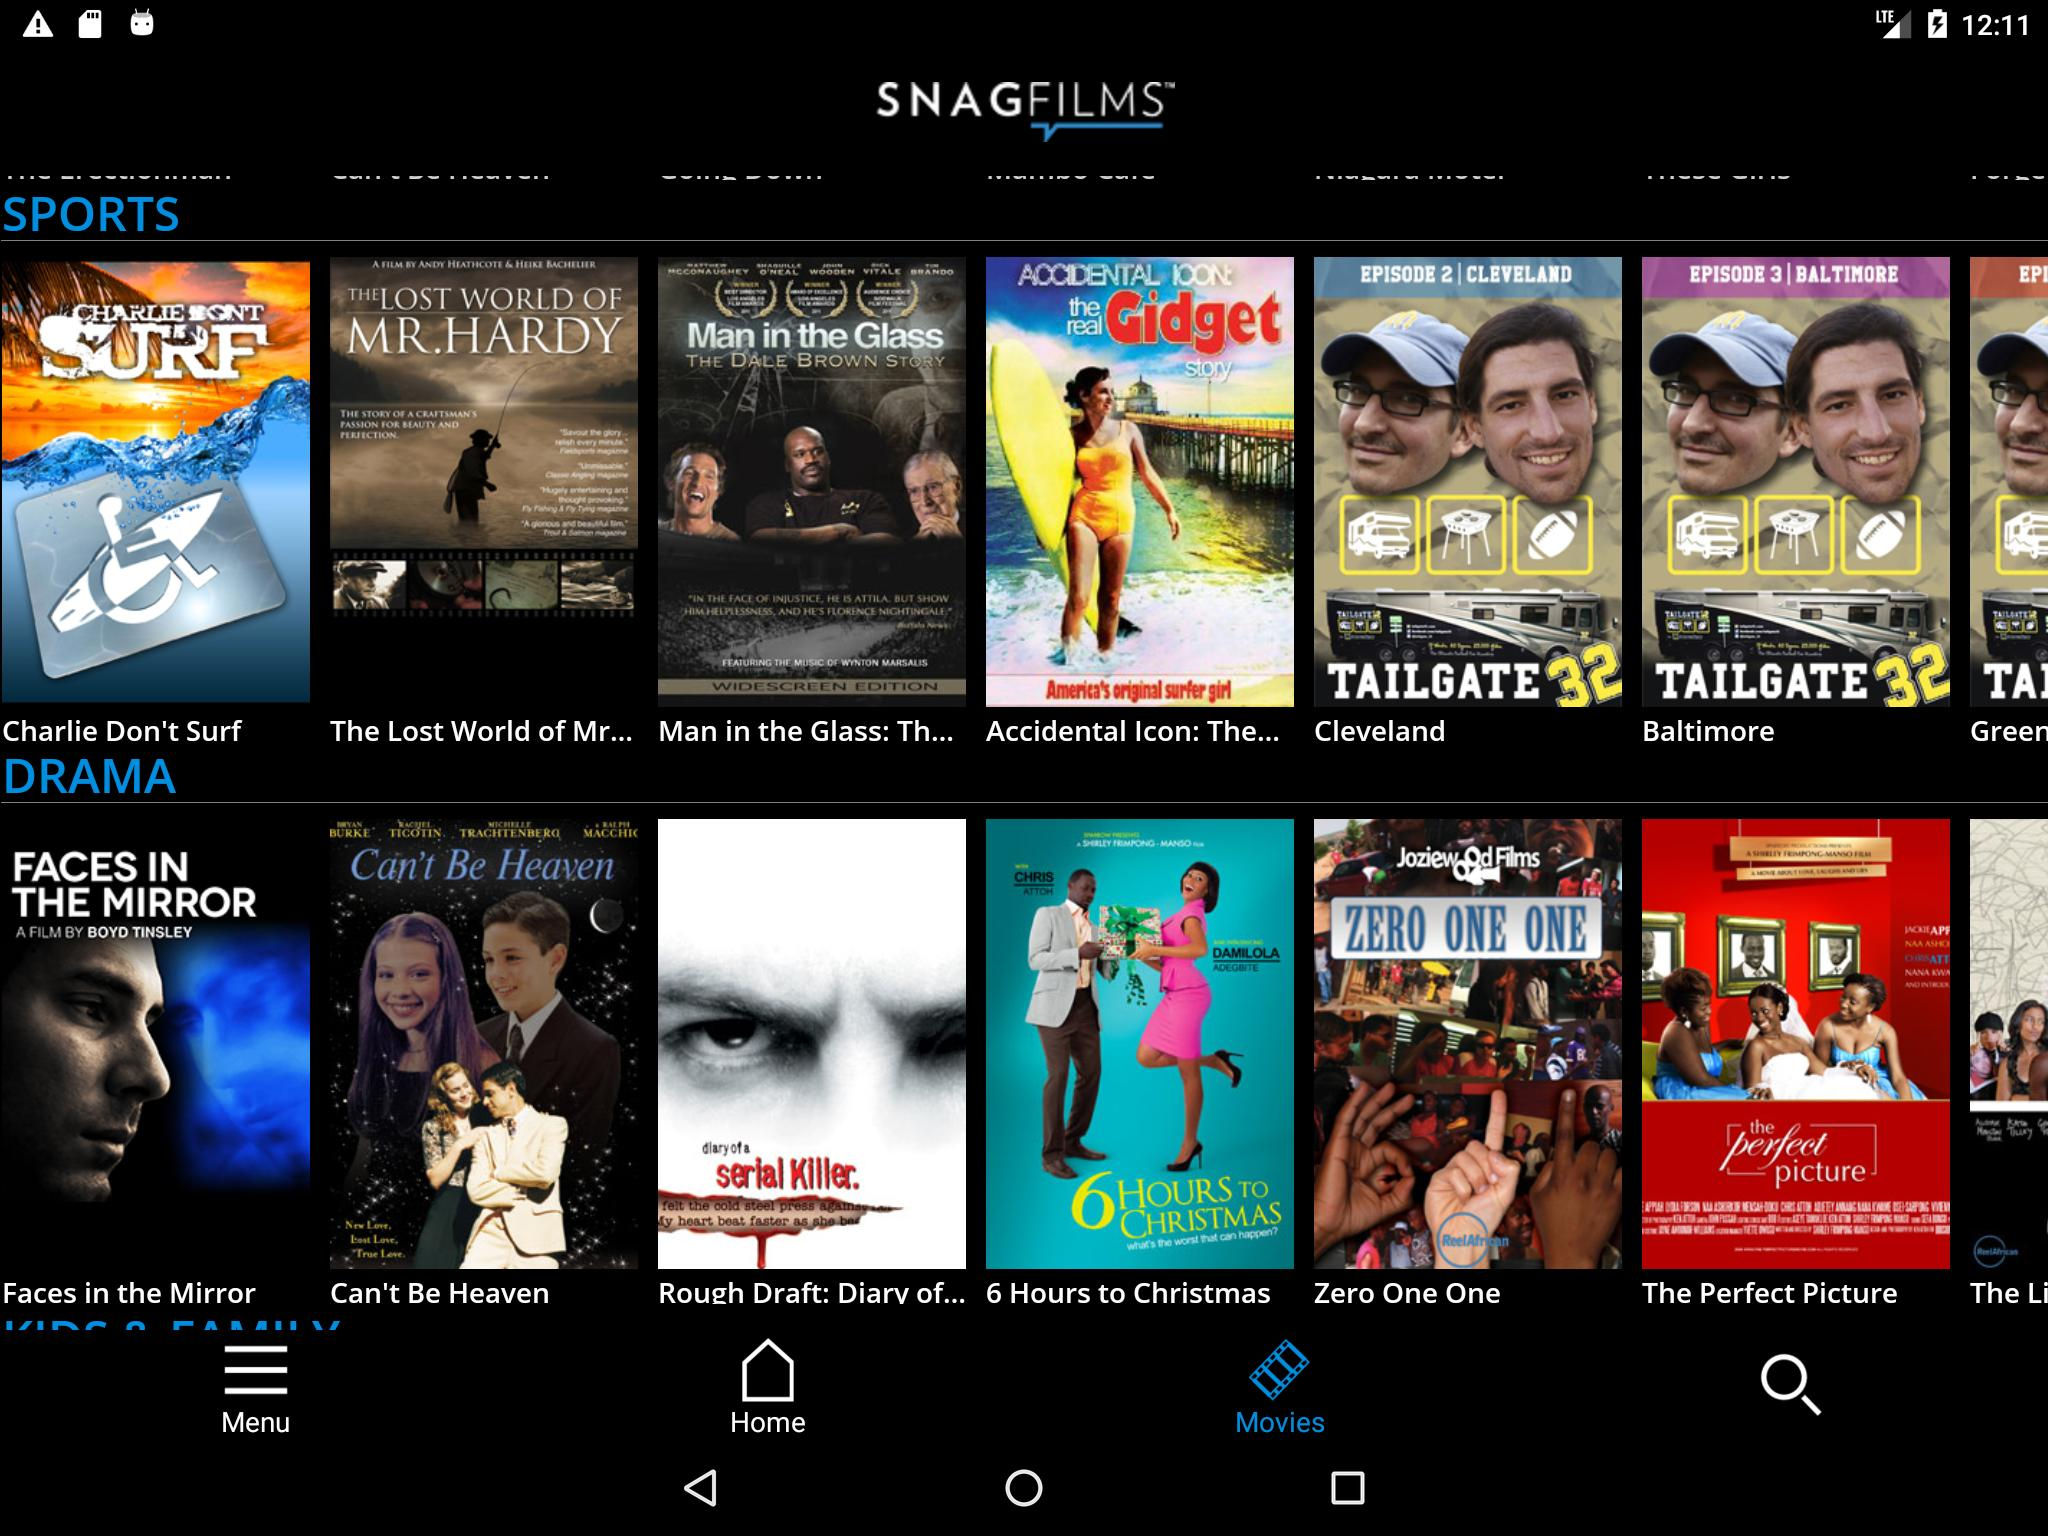 SnagFilms - Watch Free Movies for Android - APK Download